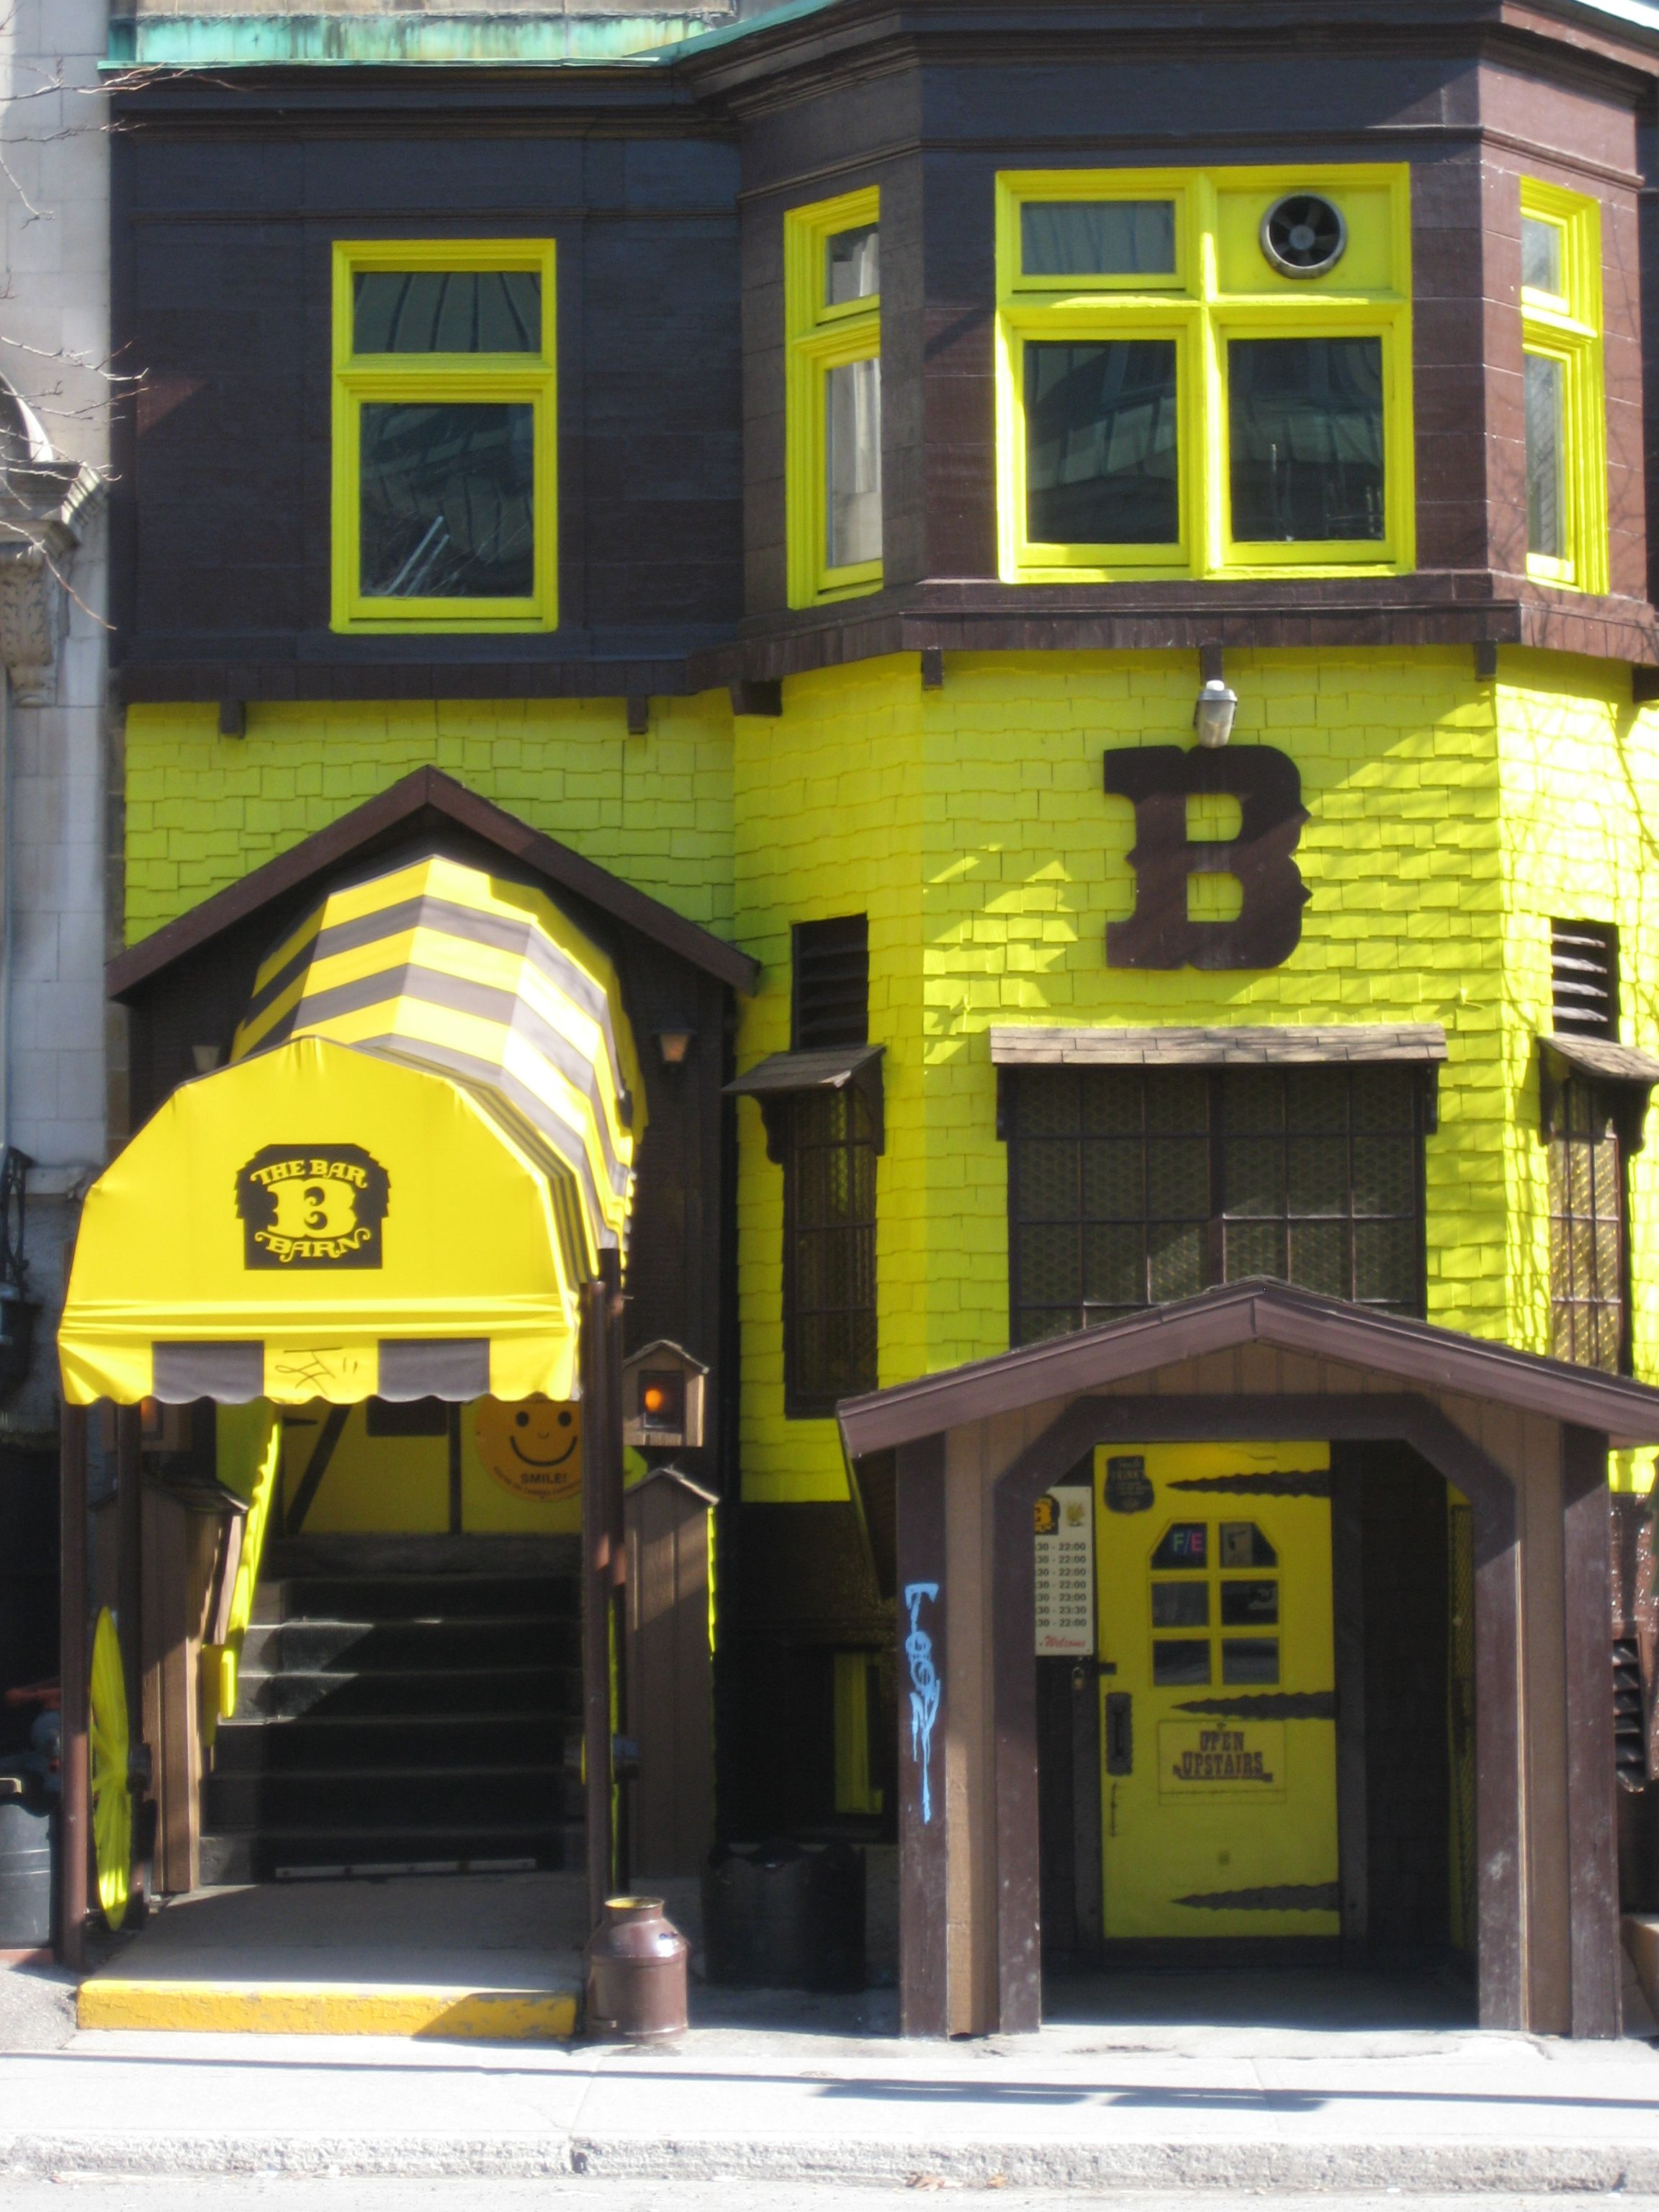 THE BAR B BARN | Bar b barn, Montreal quebec, Old montreal